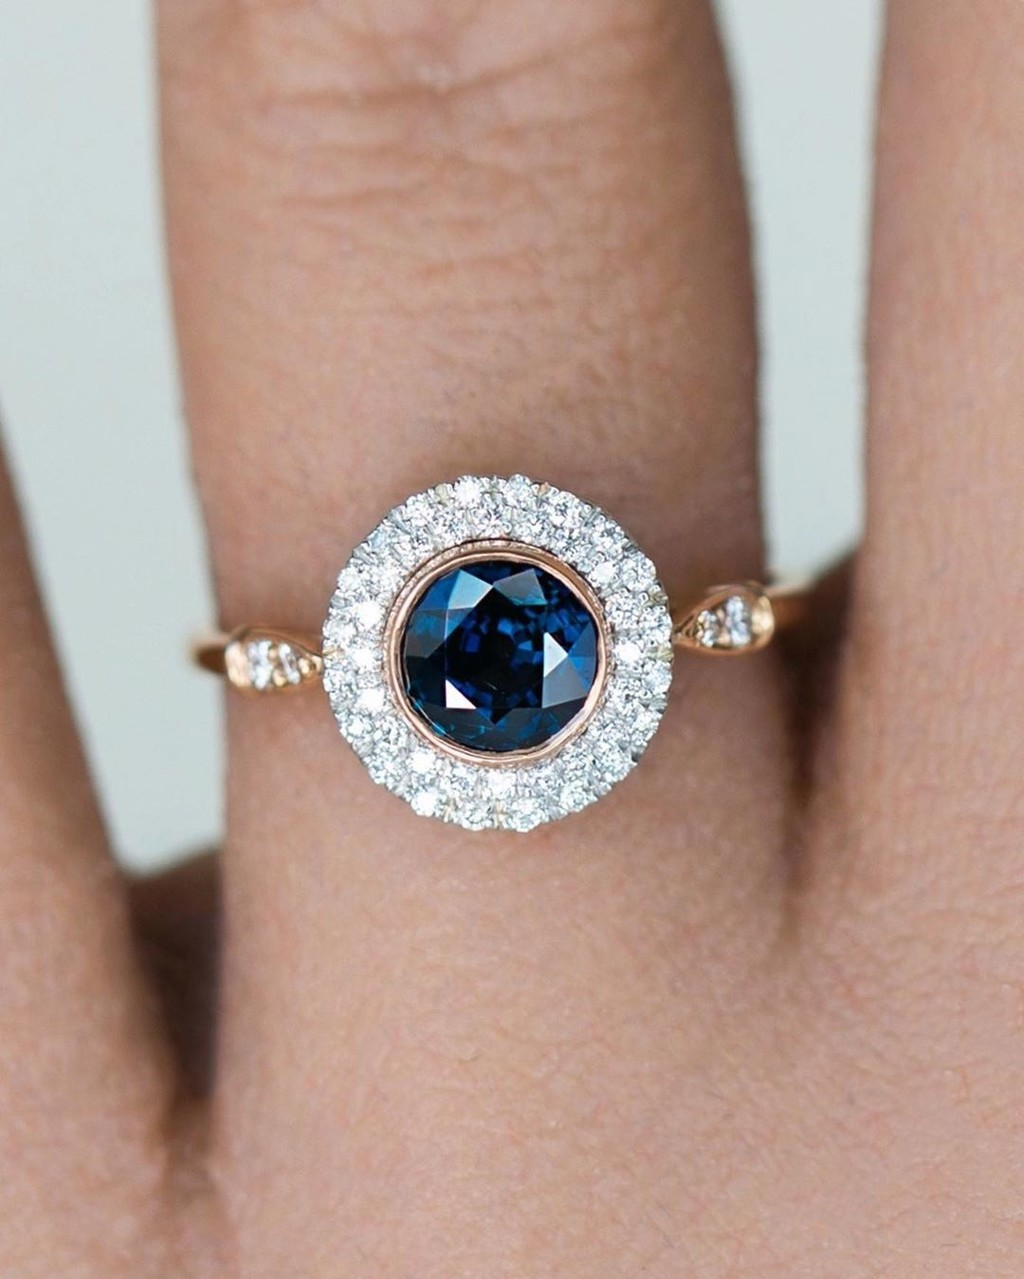 Warm rose recycled gold with cool platinum, diamonds, and Sapphire is one of my favorites 💙💗💙